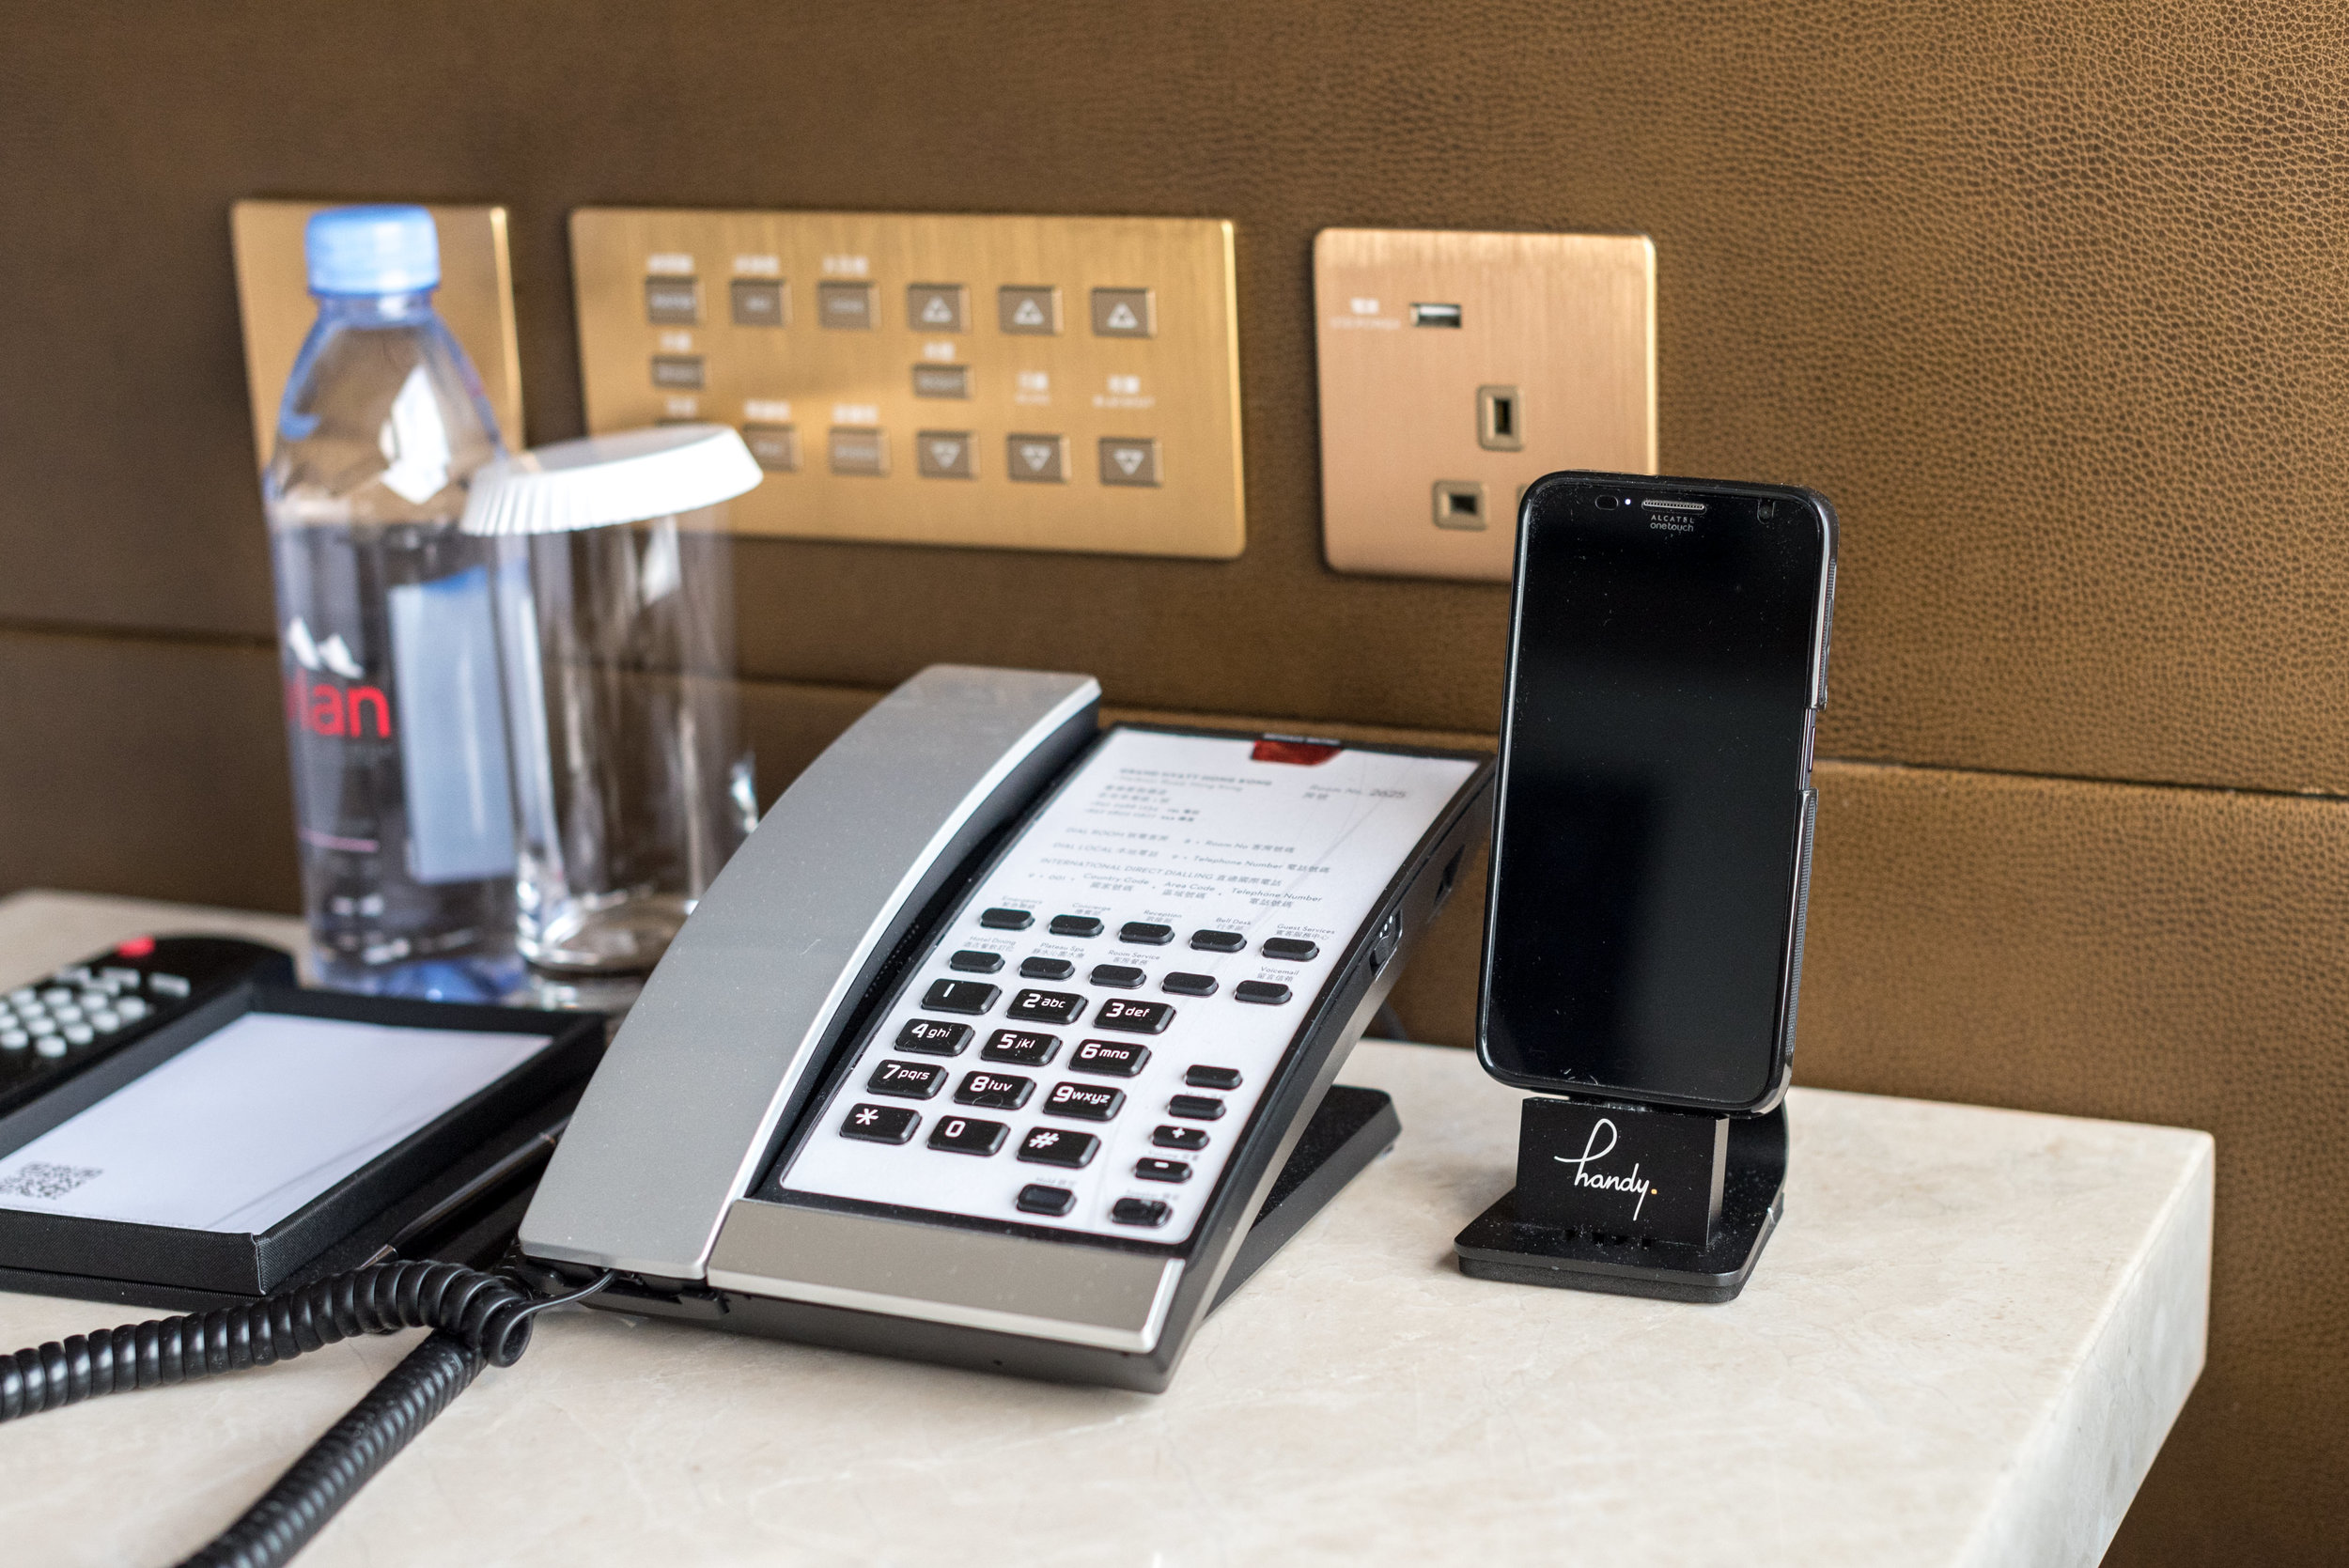 Handy Phone with Unlimited Data  Victoria Harbour Suite - Grand Hyatt Hong Kong